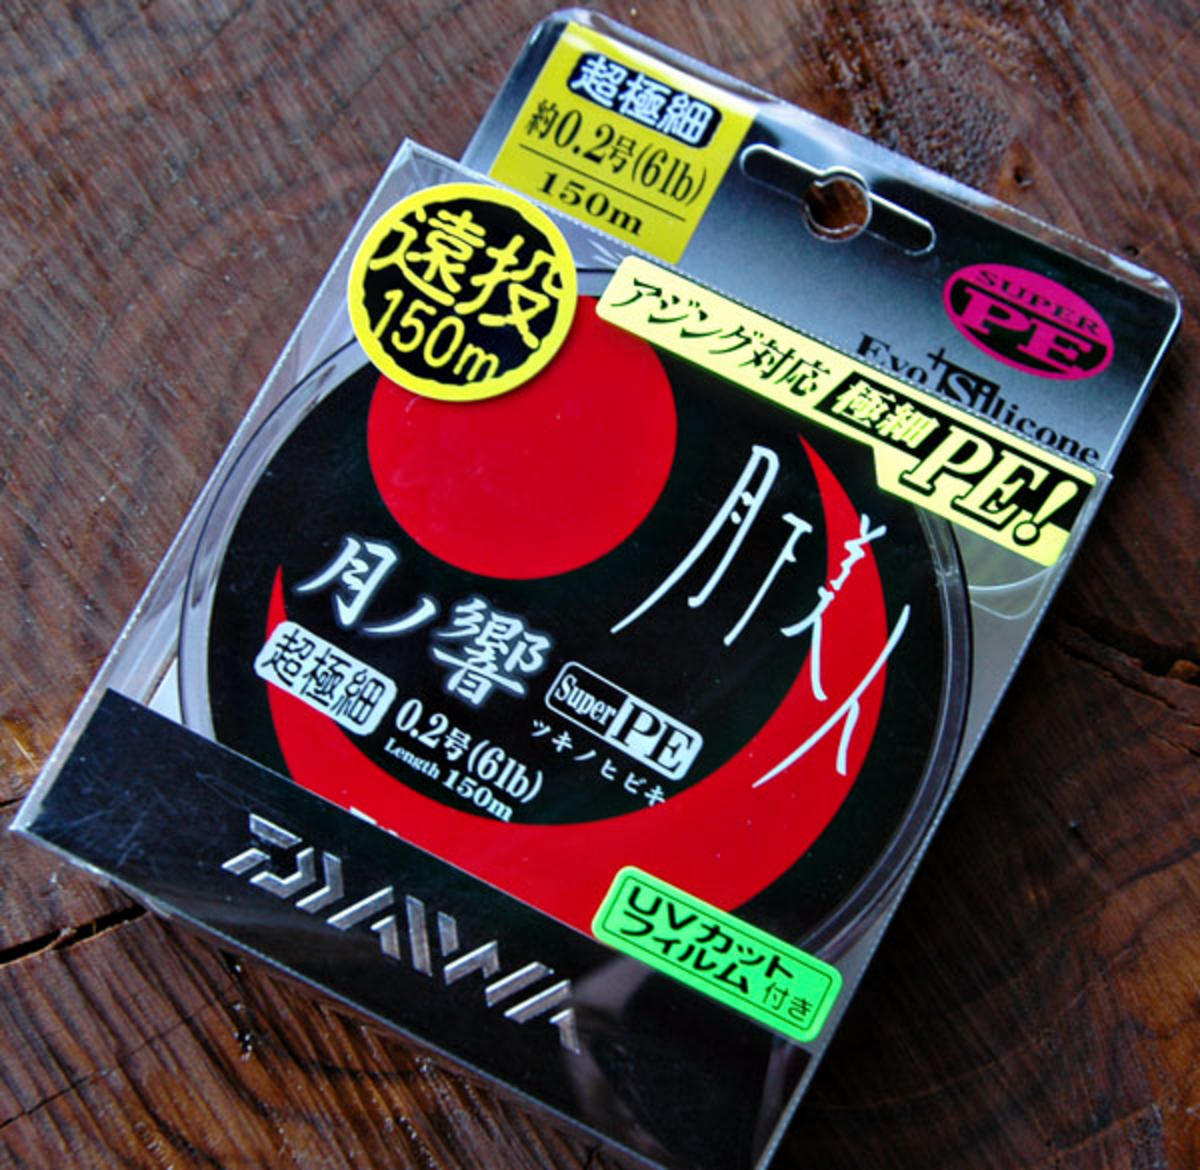 NEW DAIWA GEKKABIJIN SUPER PE FISHING BRAID 150M SPOOL 6LB -8LB BREAKING STRAIN